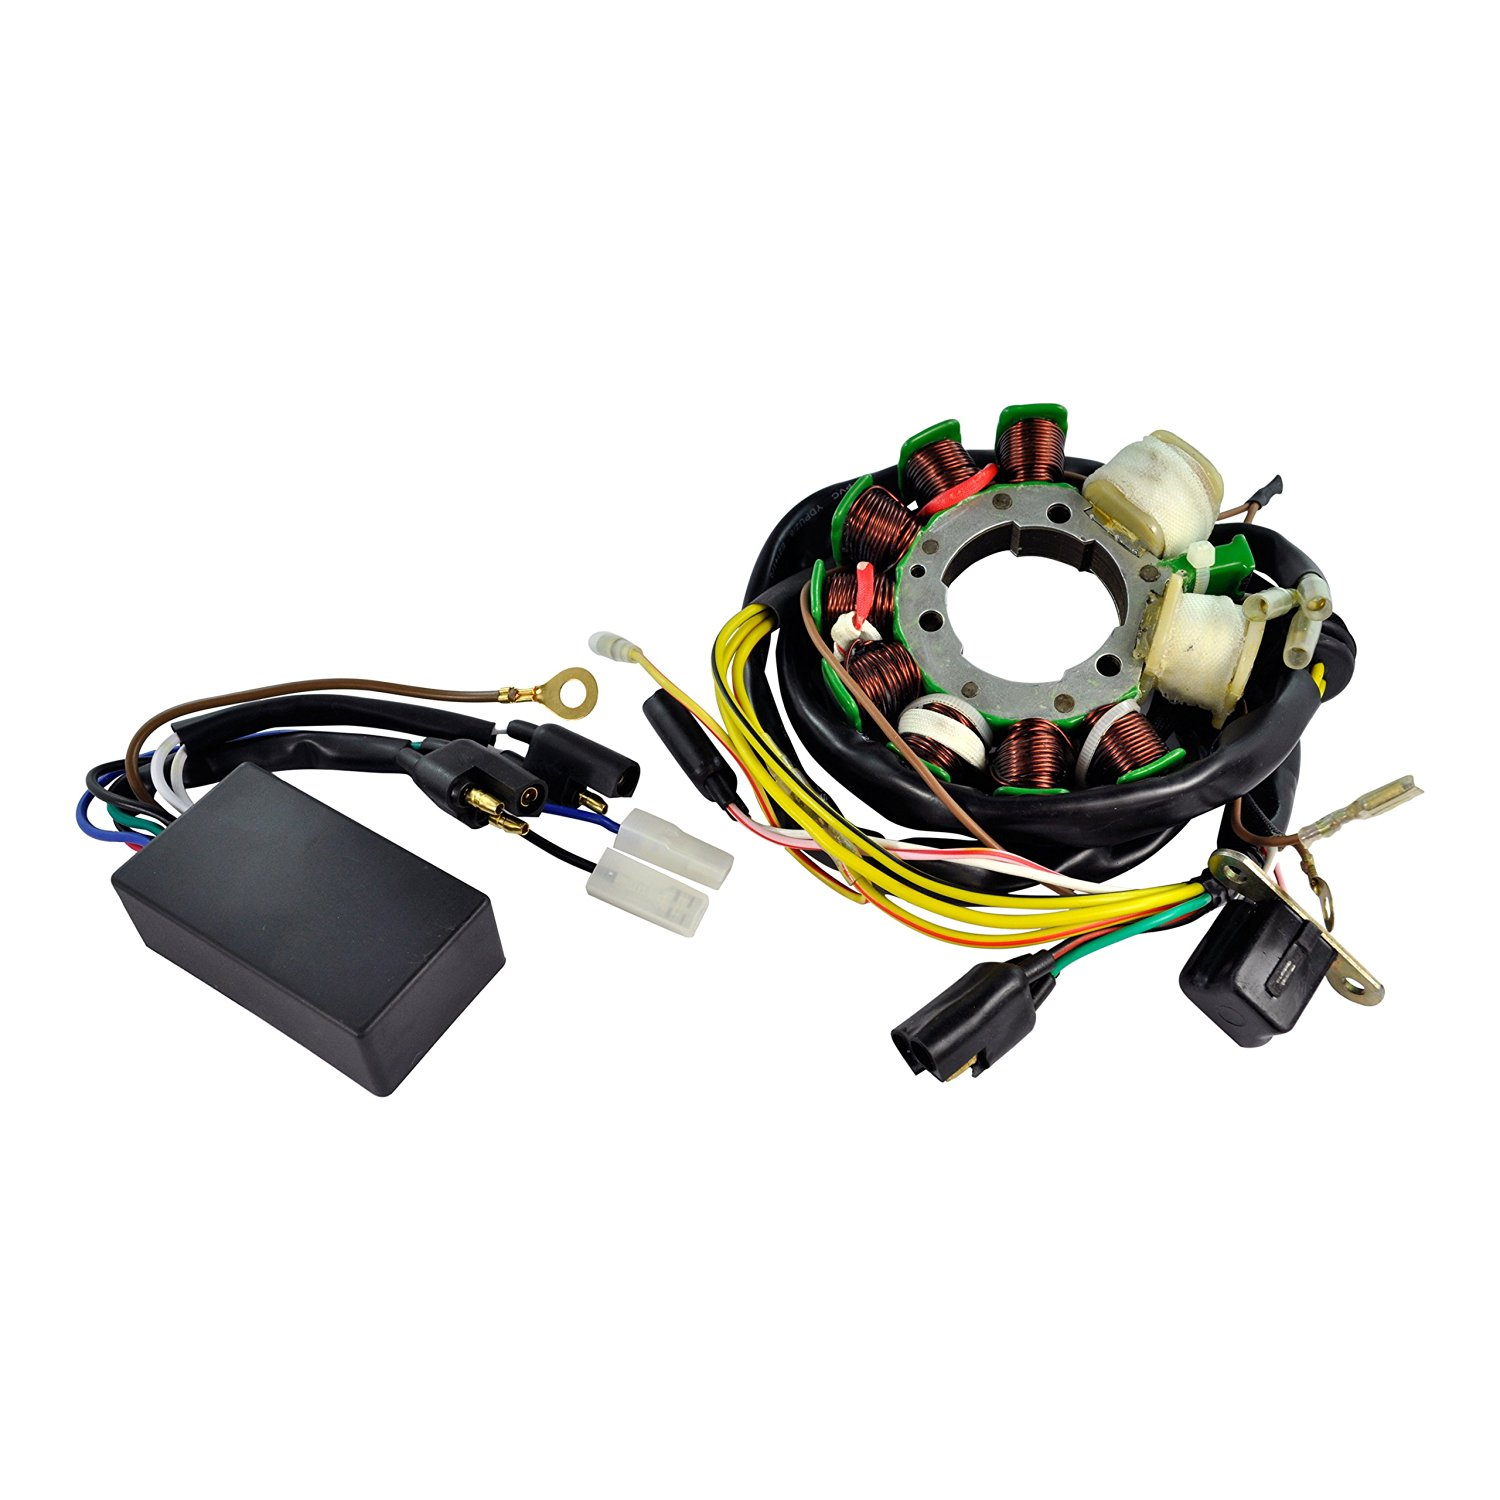 Cheap Mpp 335 400 Find Deals On Line At Alibabacom 1996 Polaris Sportsman 500 Stator Wiring Diagram Get Quotations And Cdi Box Atv 1995 2002 Magnum 425